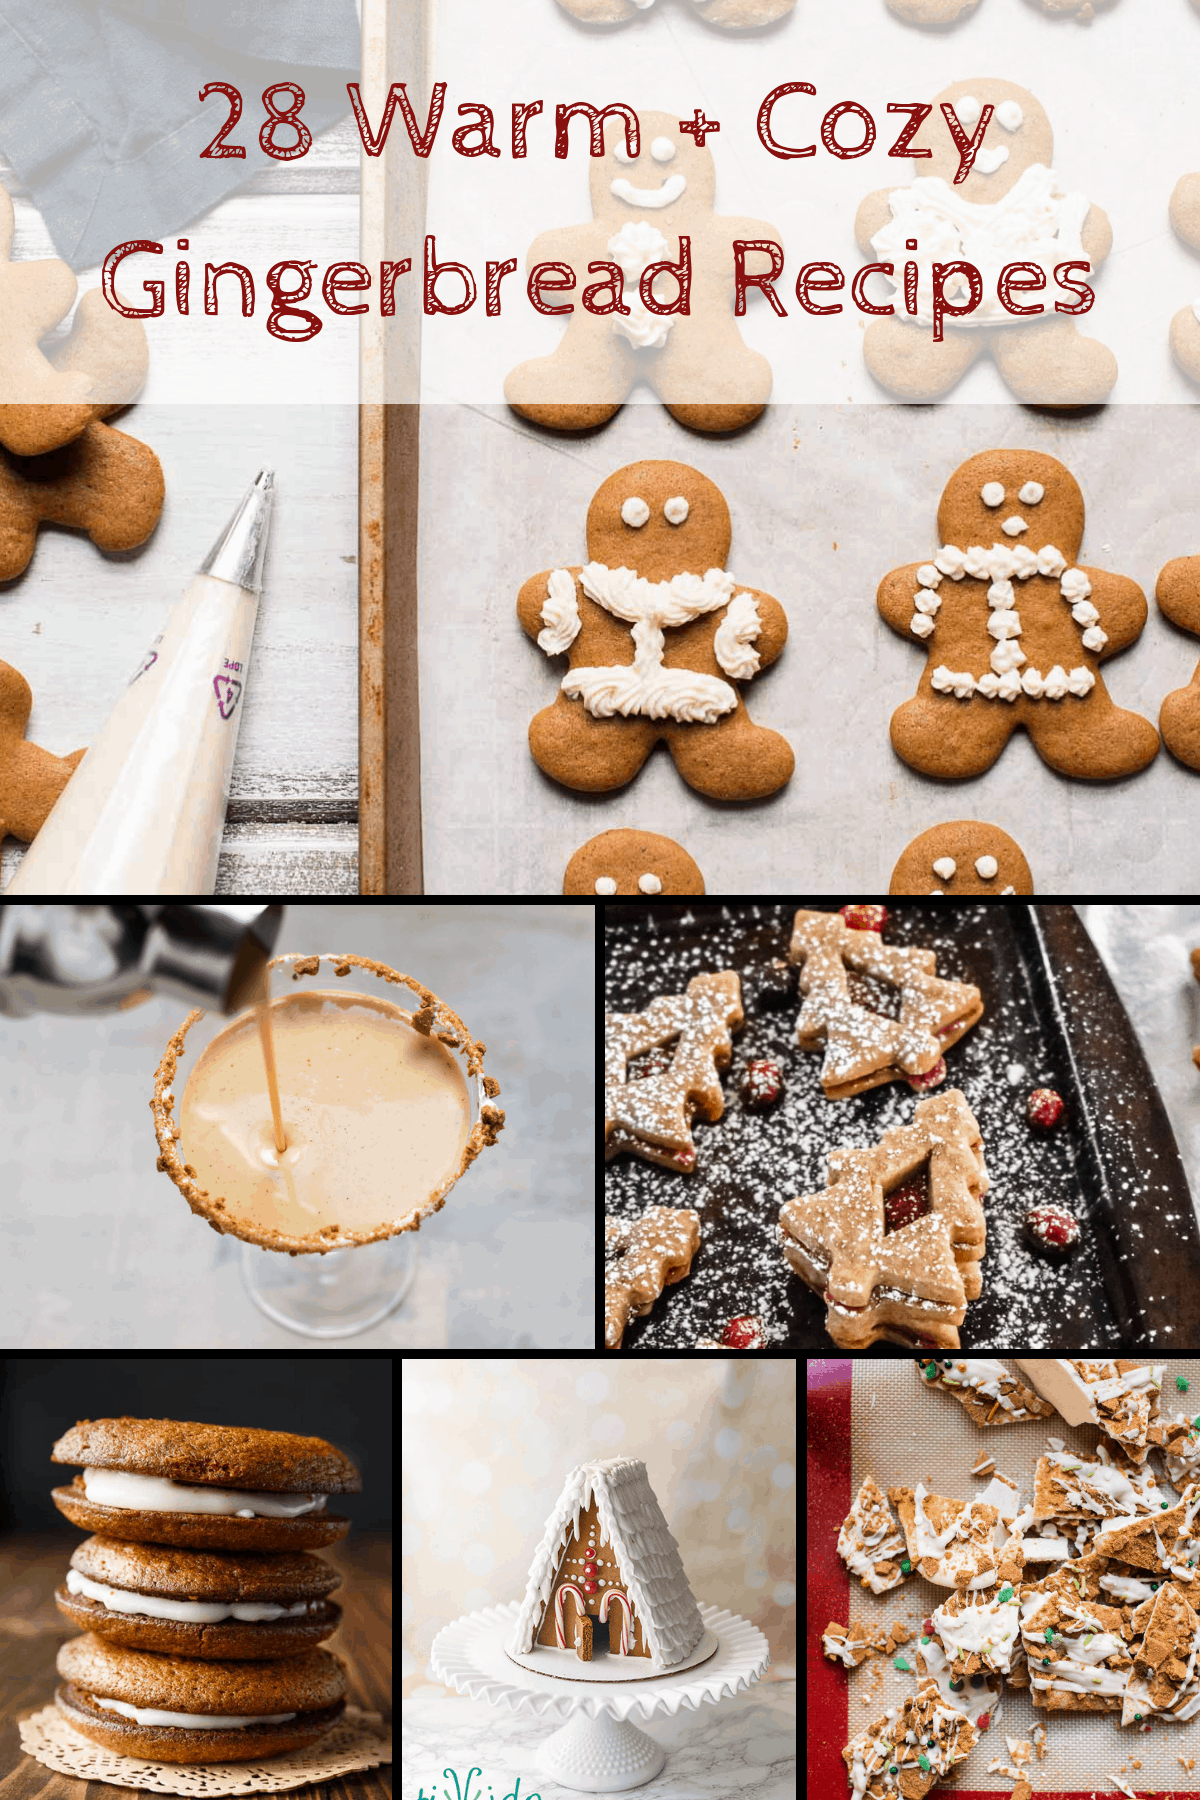 Doughnuts, coffees, cakes and more this gingerbread gingerbread recipe collection has everything you need for the holidays! #gingerbread #holidaytreats